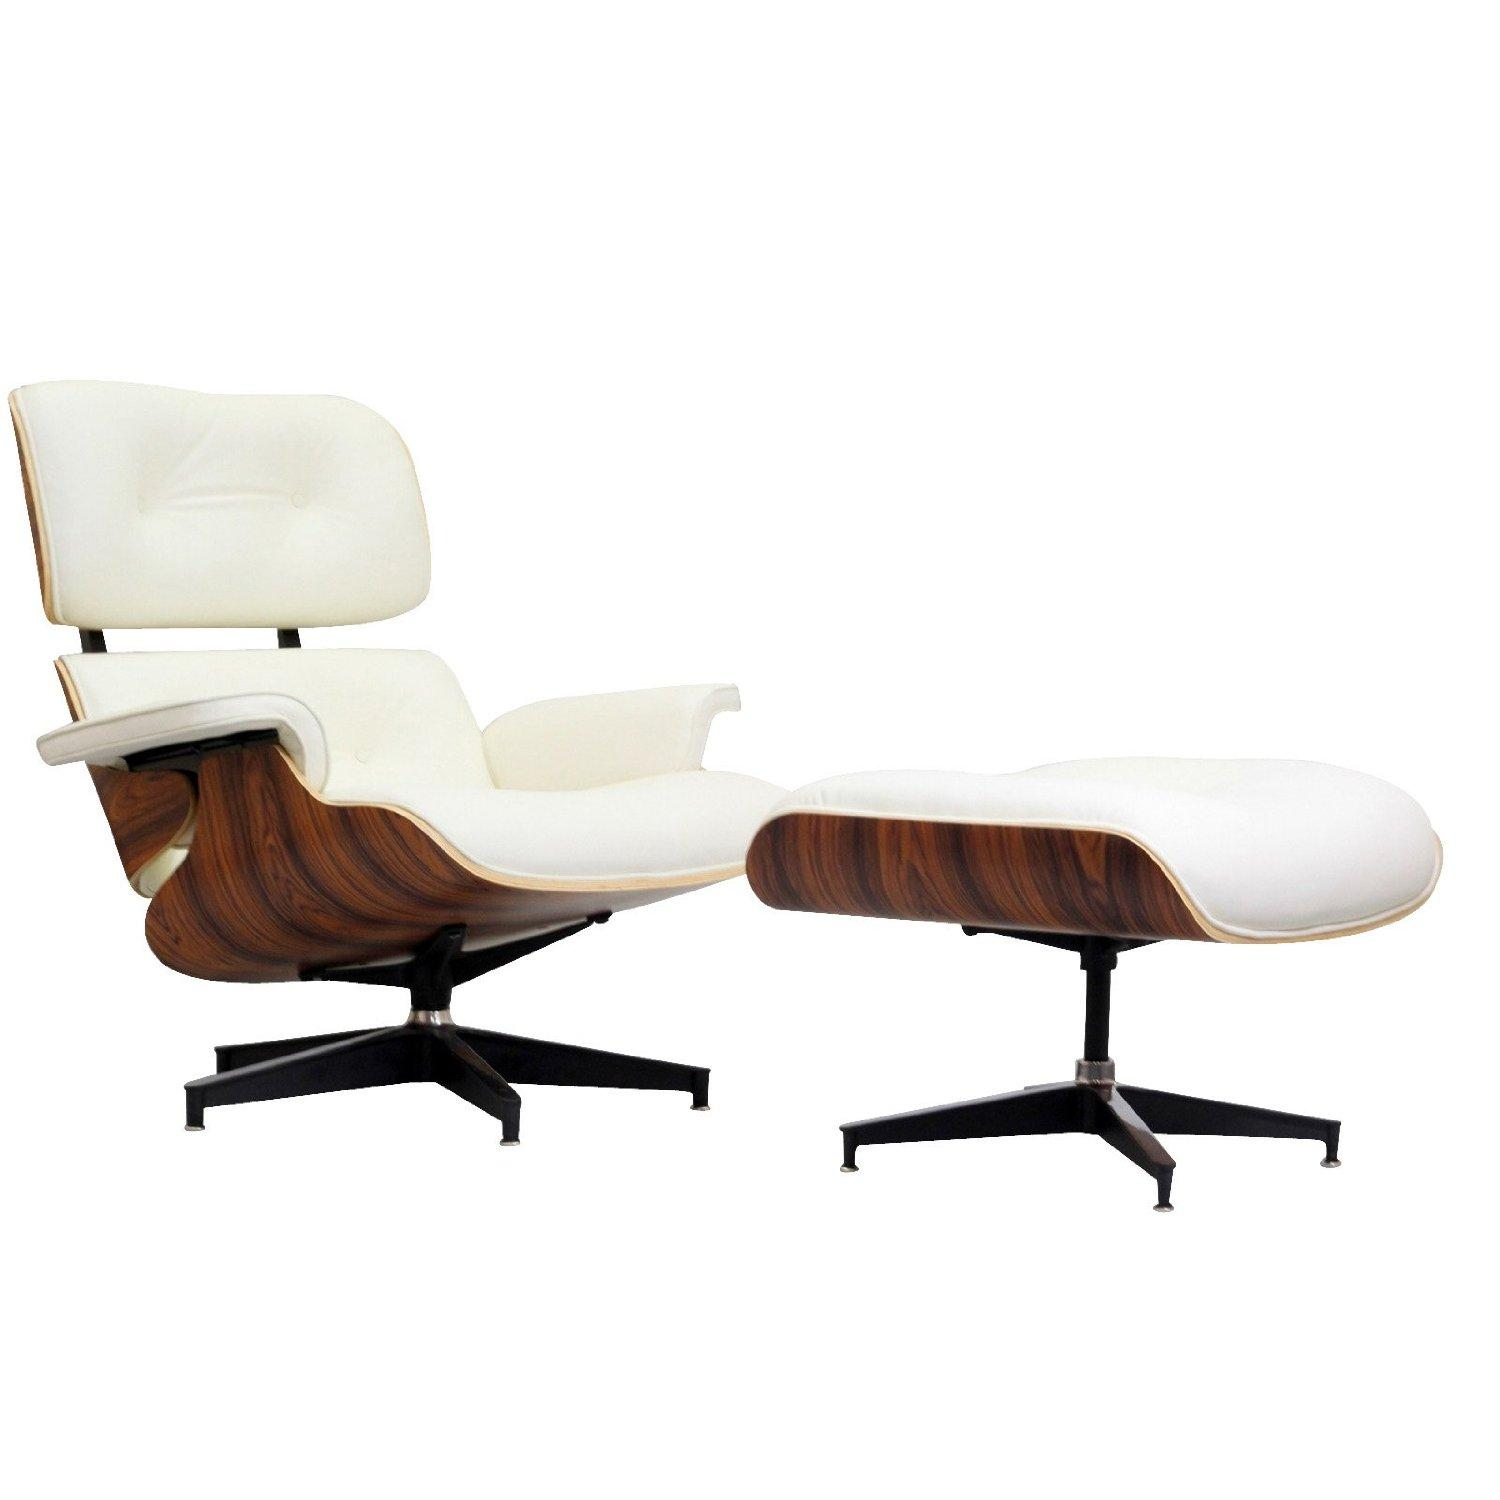 From The Manufacturer. Eames ...